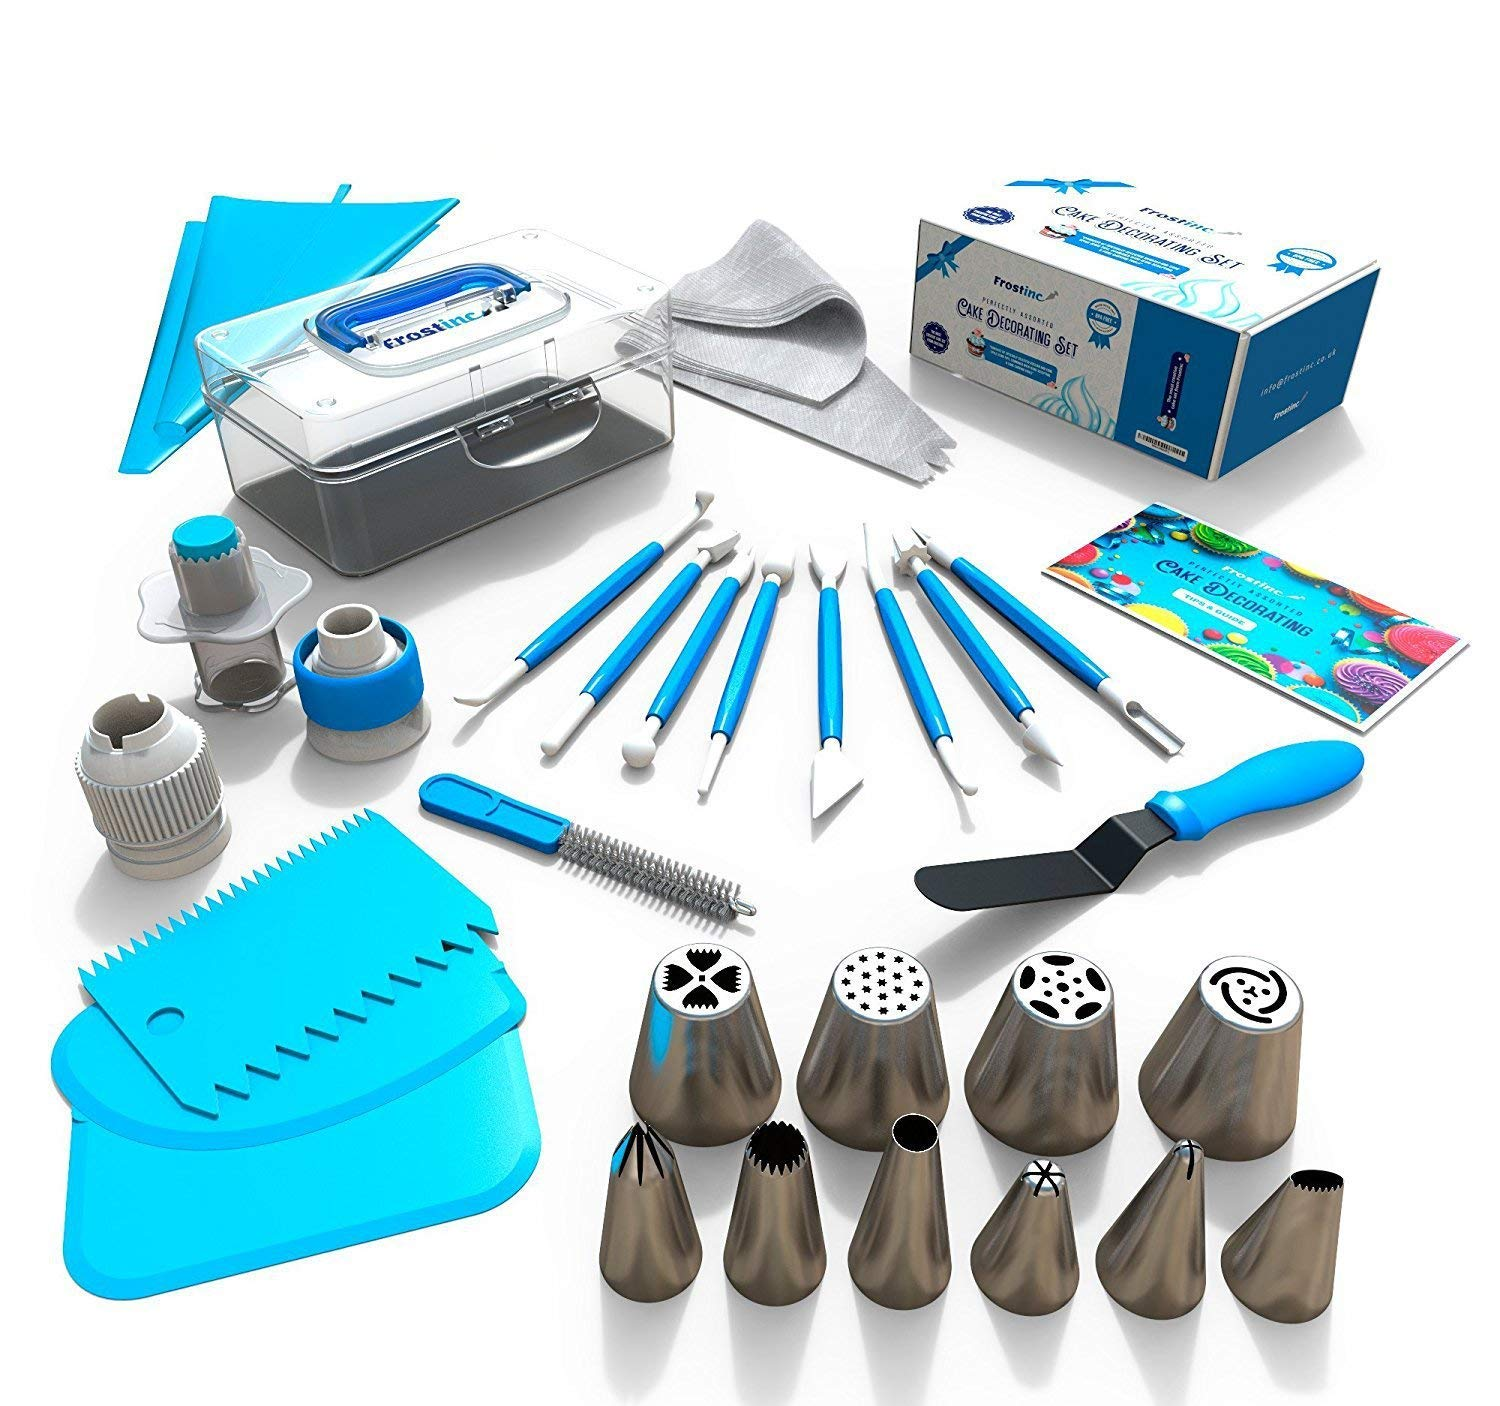 34pcs Cake Cupcake Decorating Tool Professional Supply DIY ...